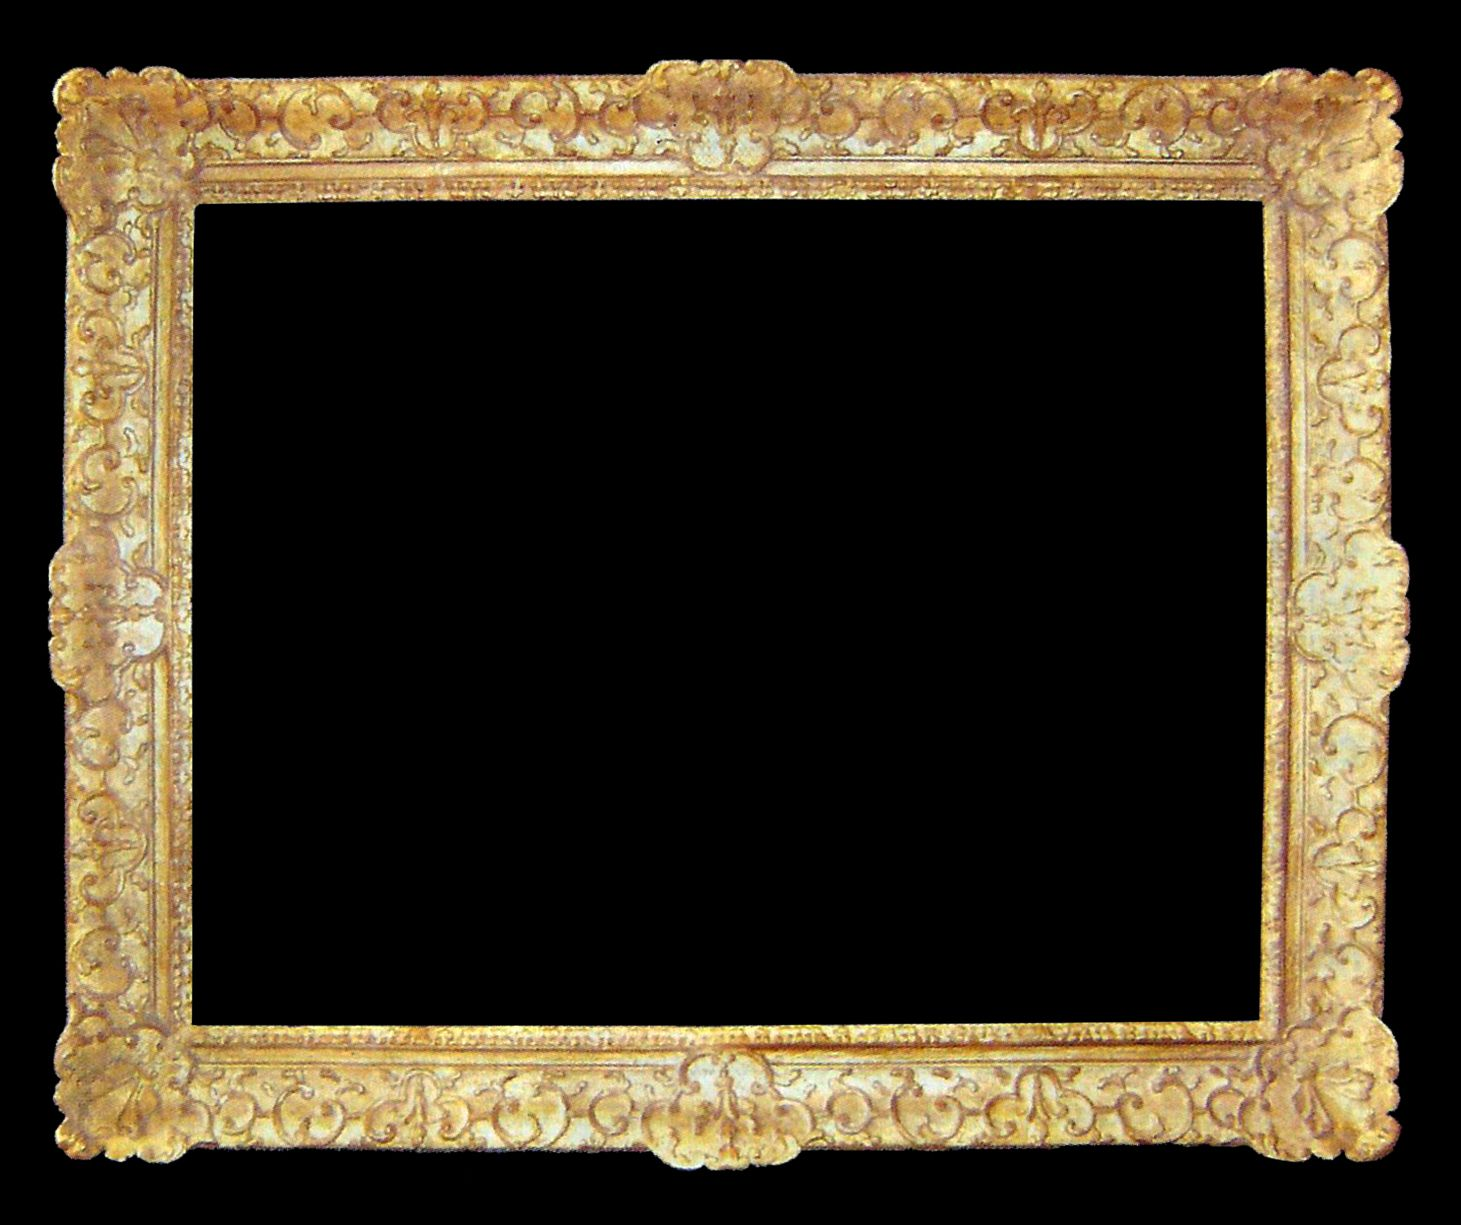 louis xiv frame also known as a french impressionist frame with carved ornament and gilded